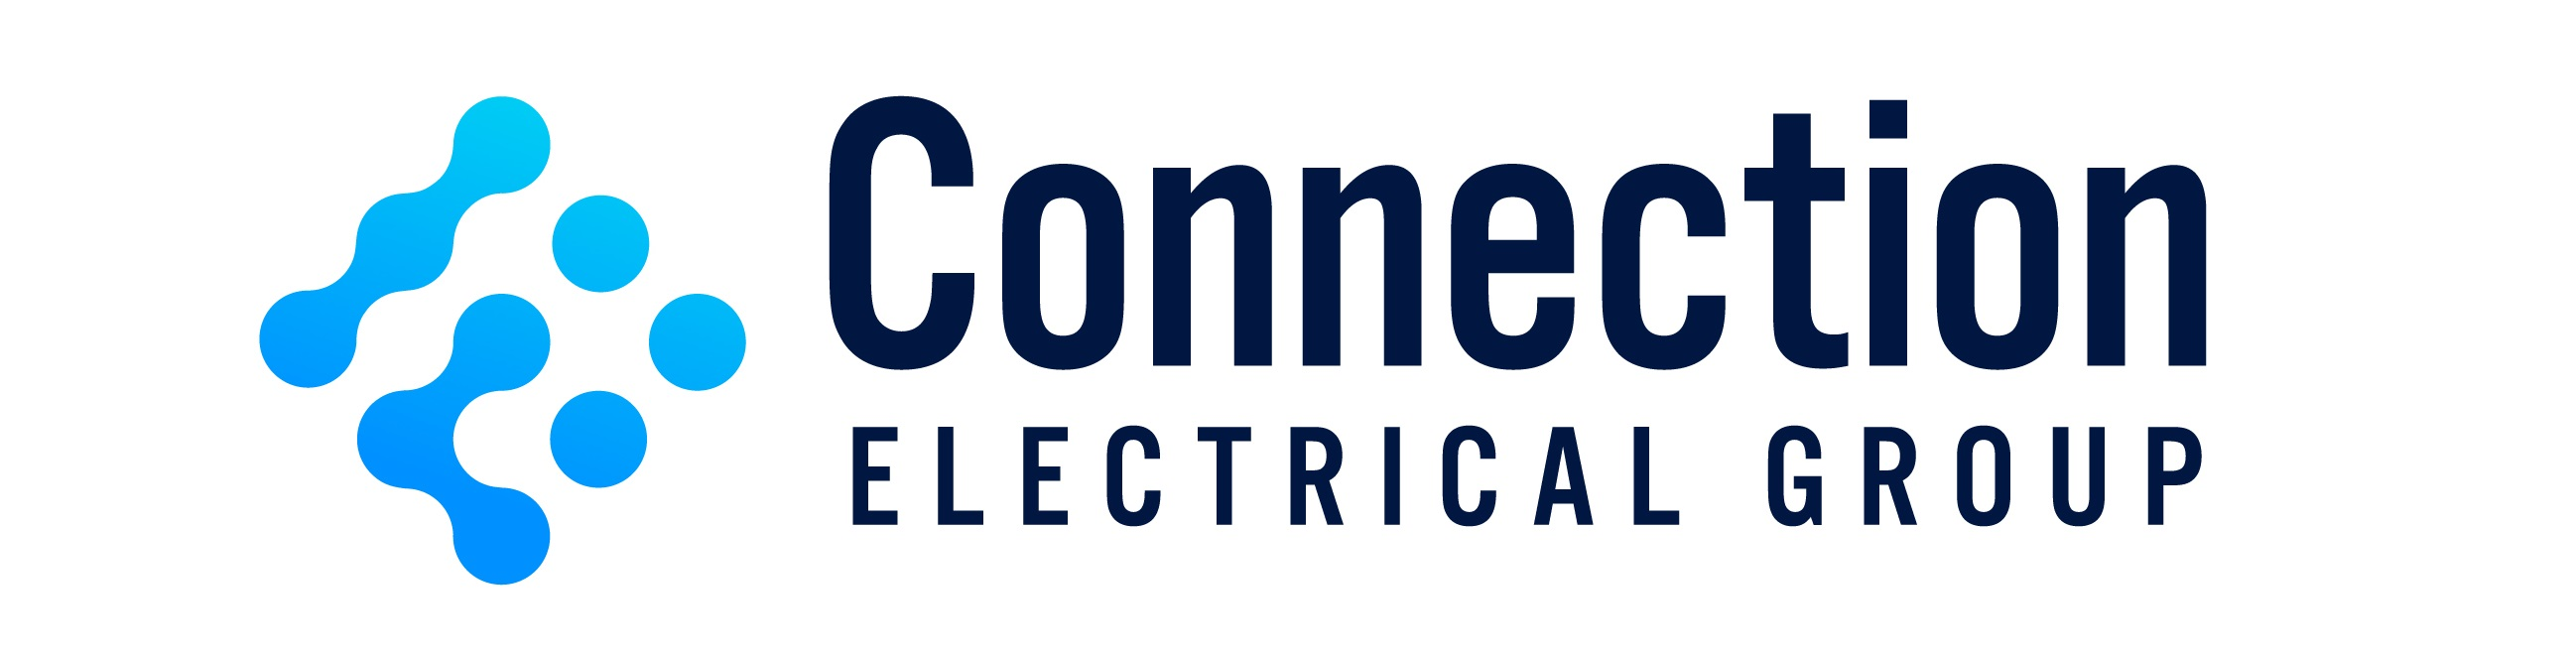 Connection Electrical Group